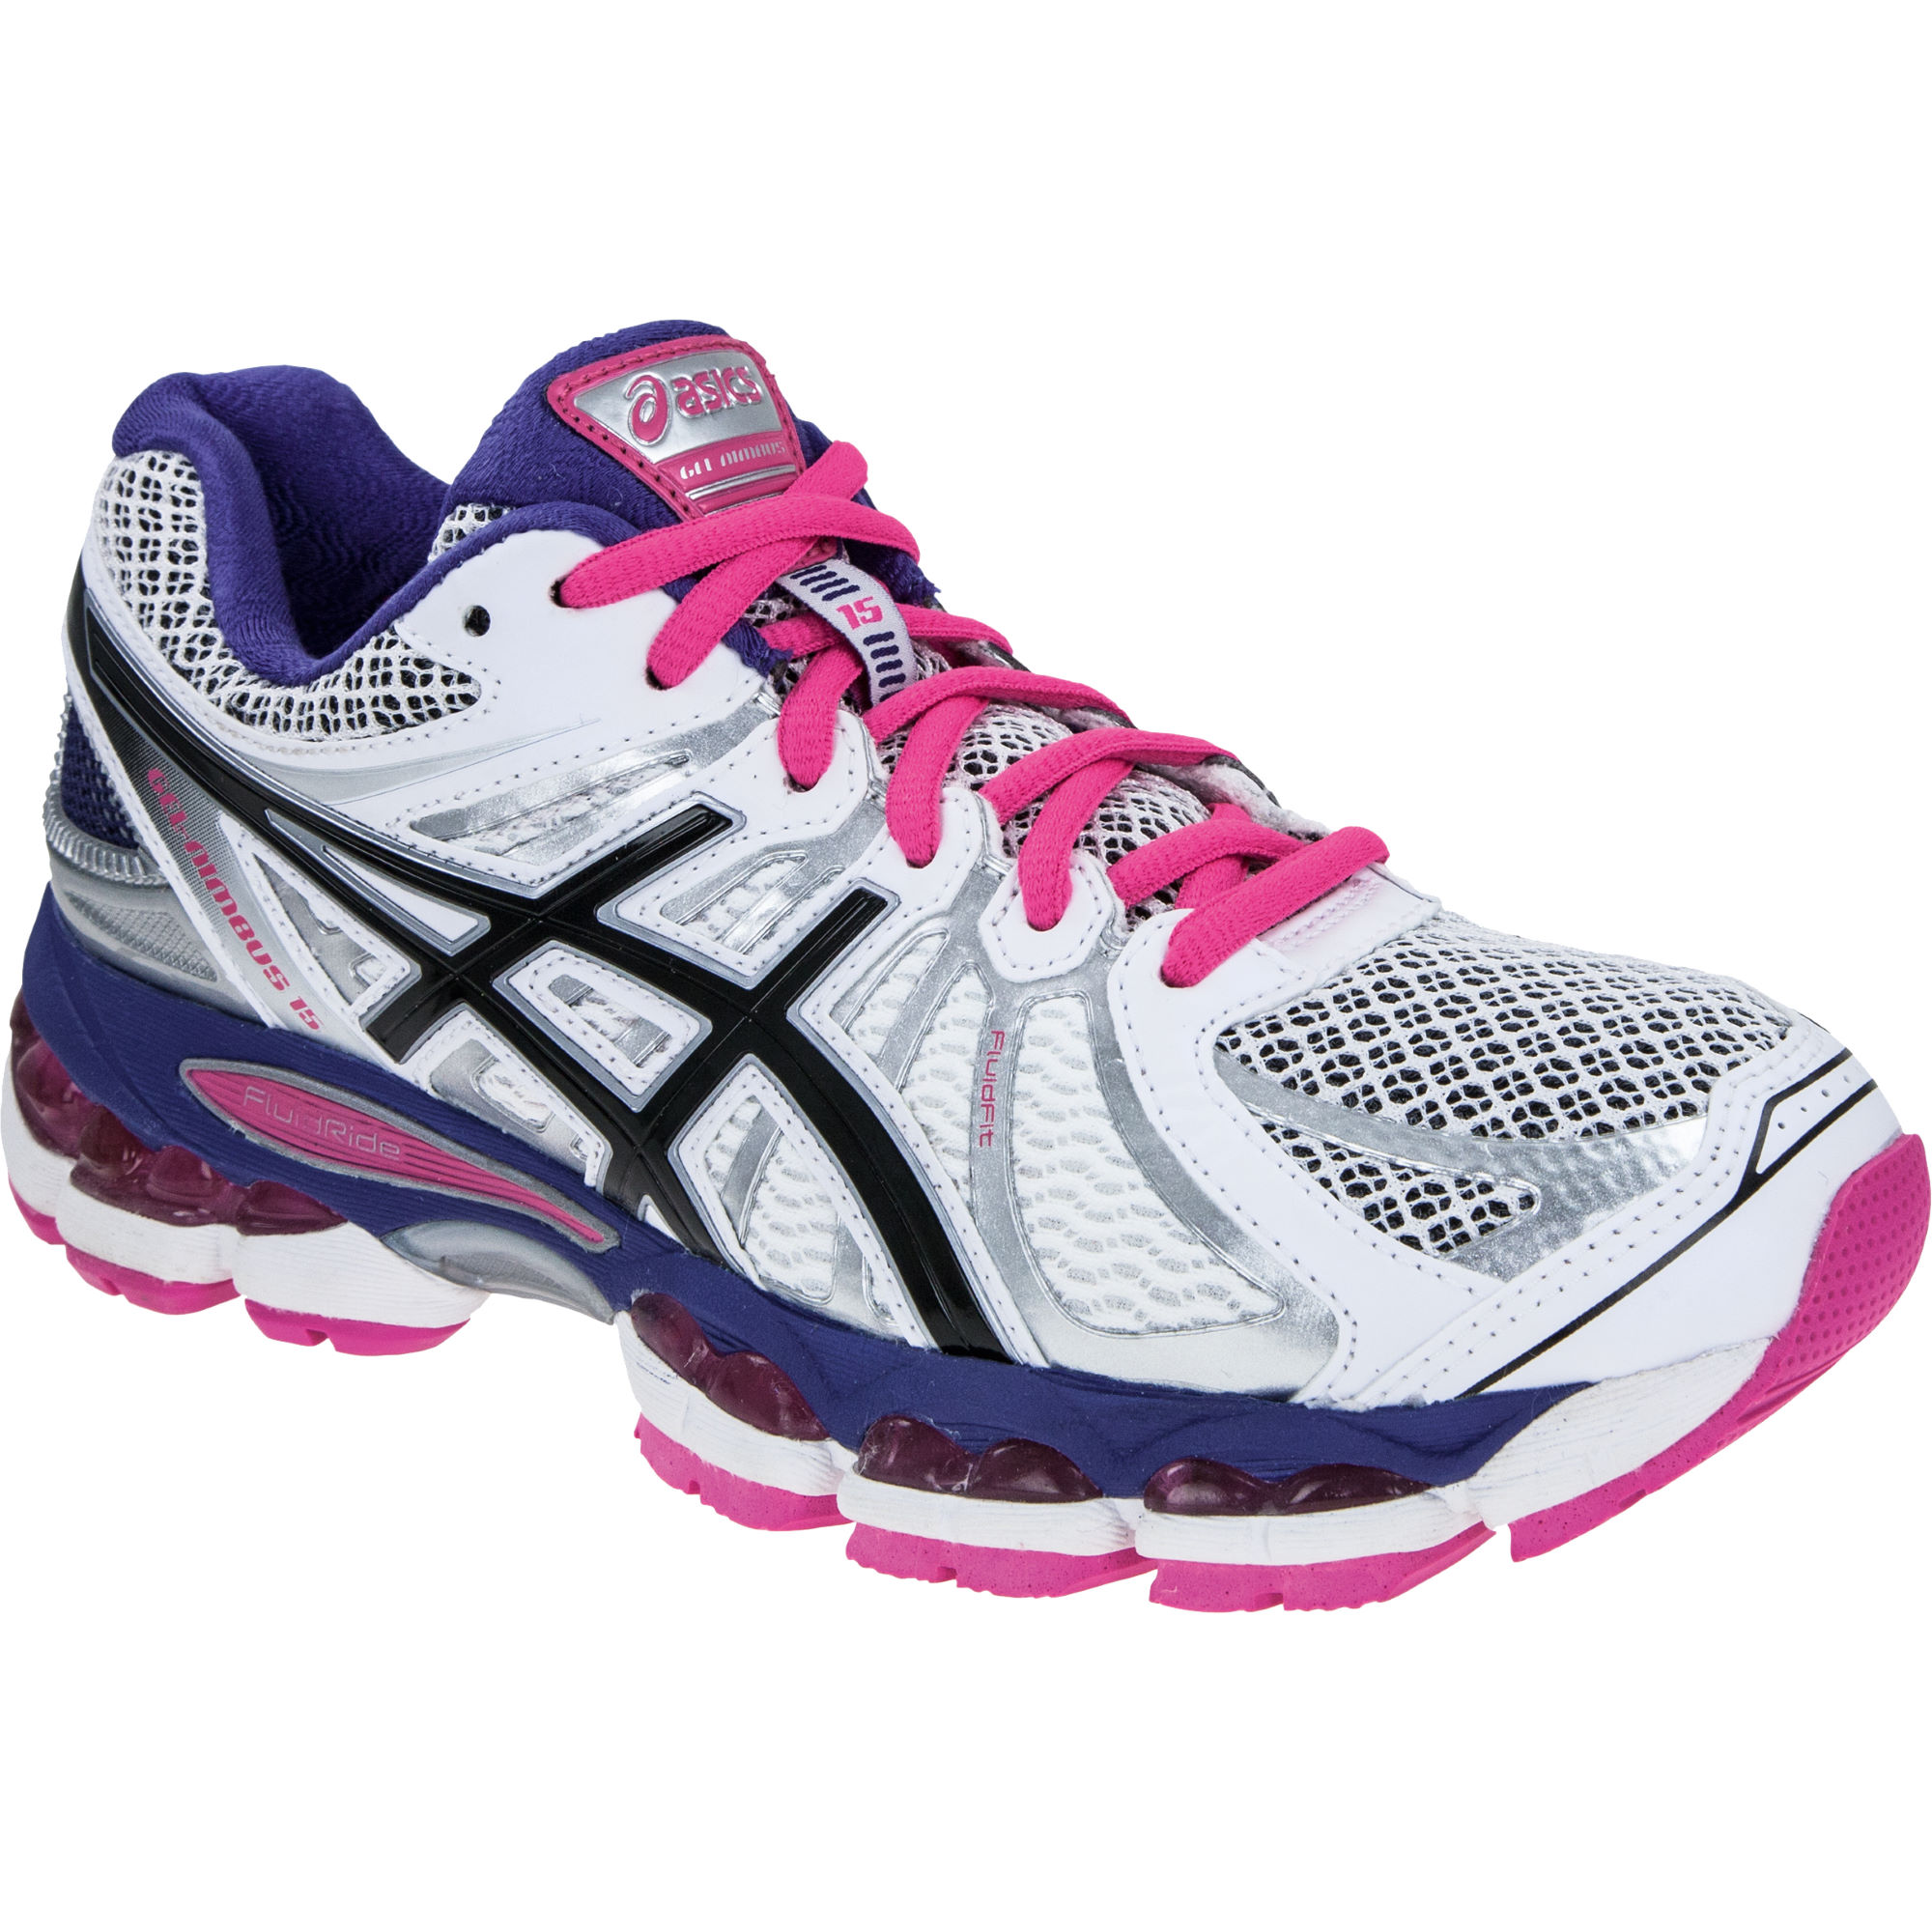 asics gel-nimbus 15 shoes aw13